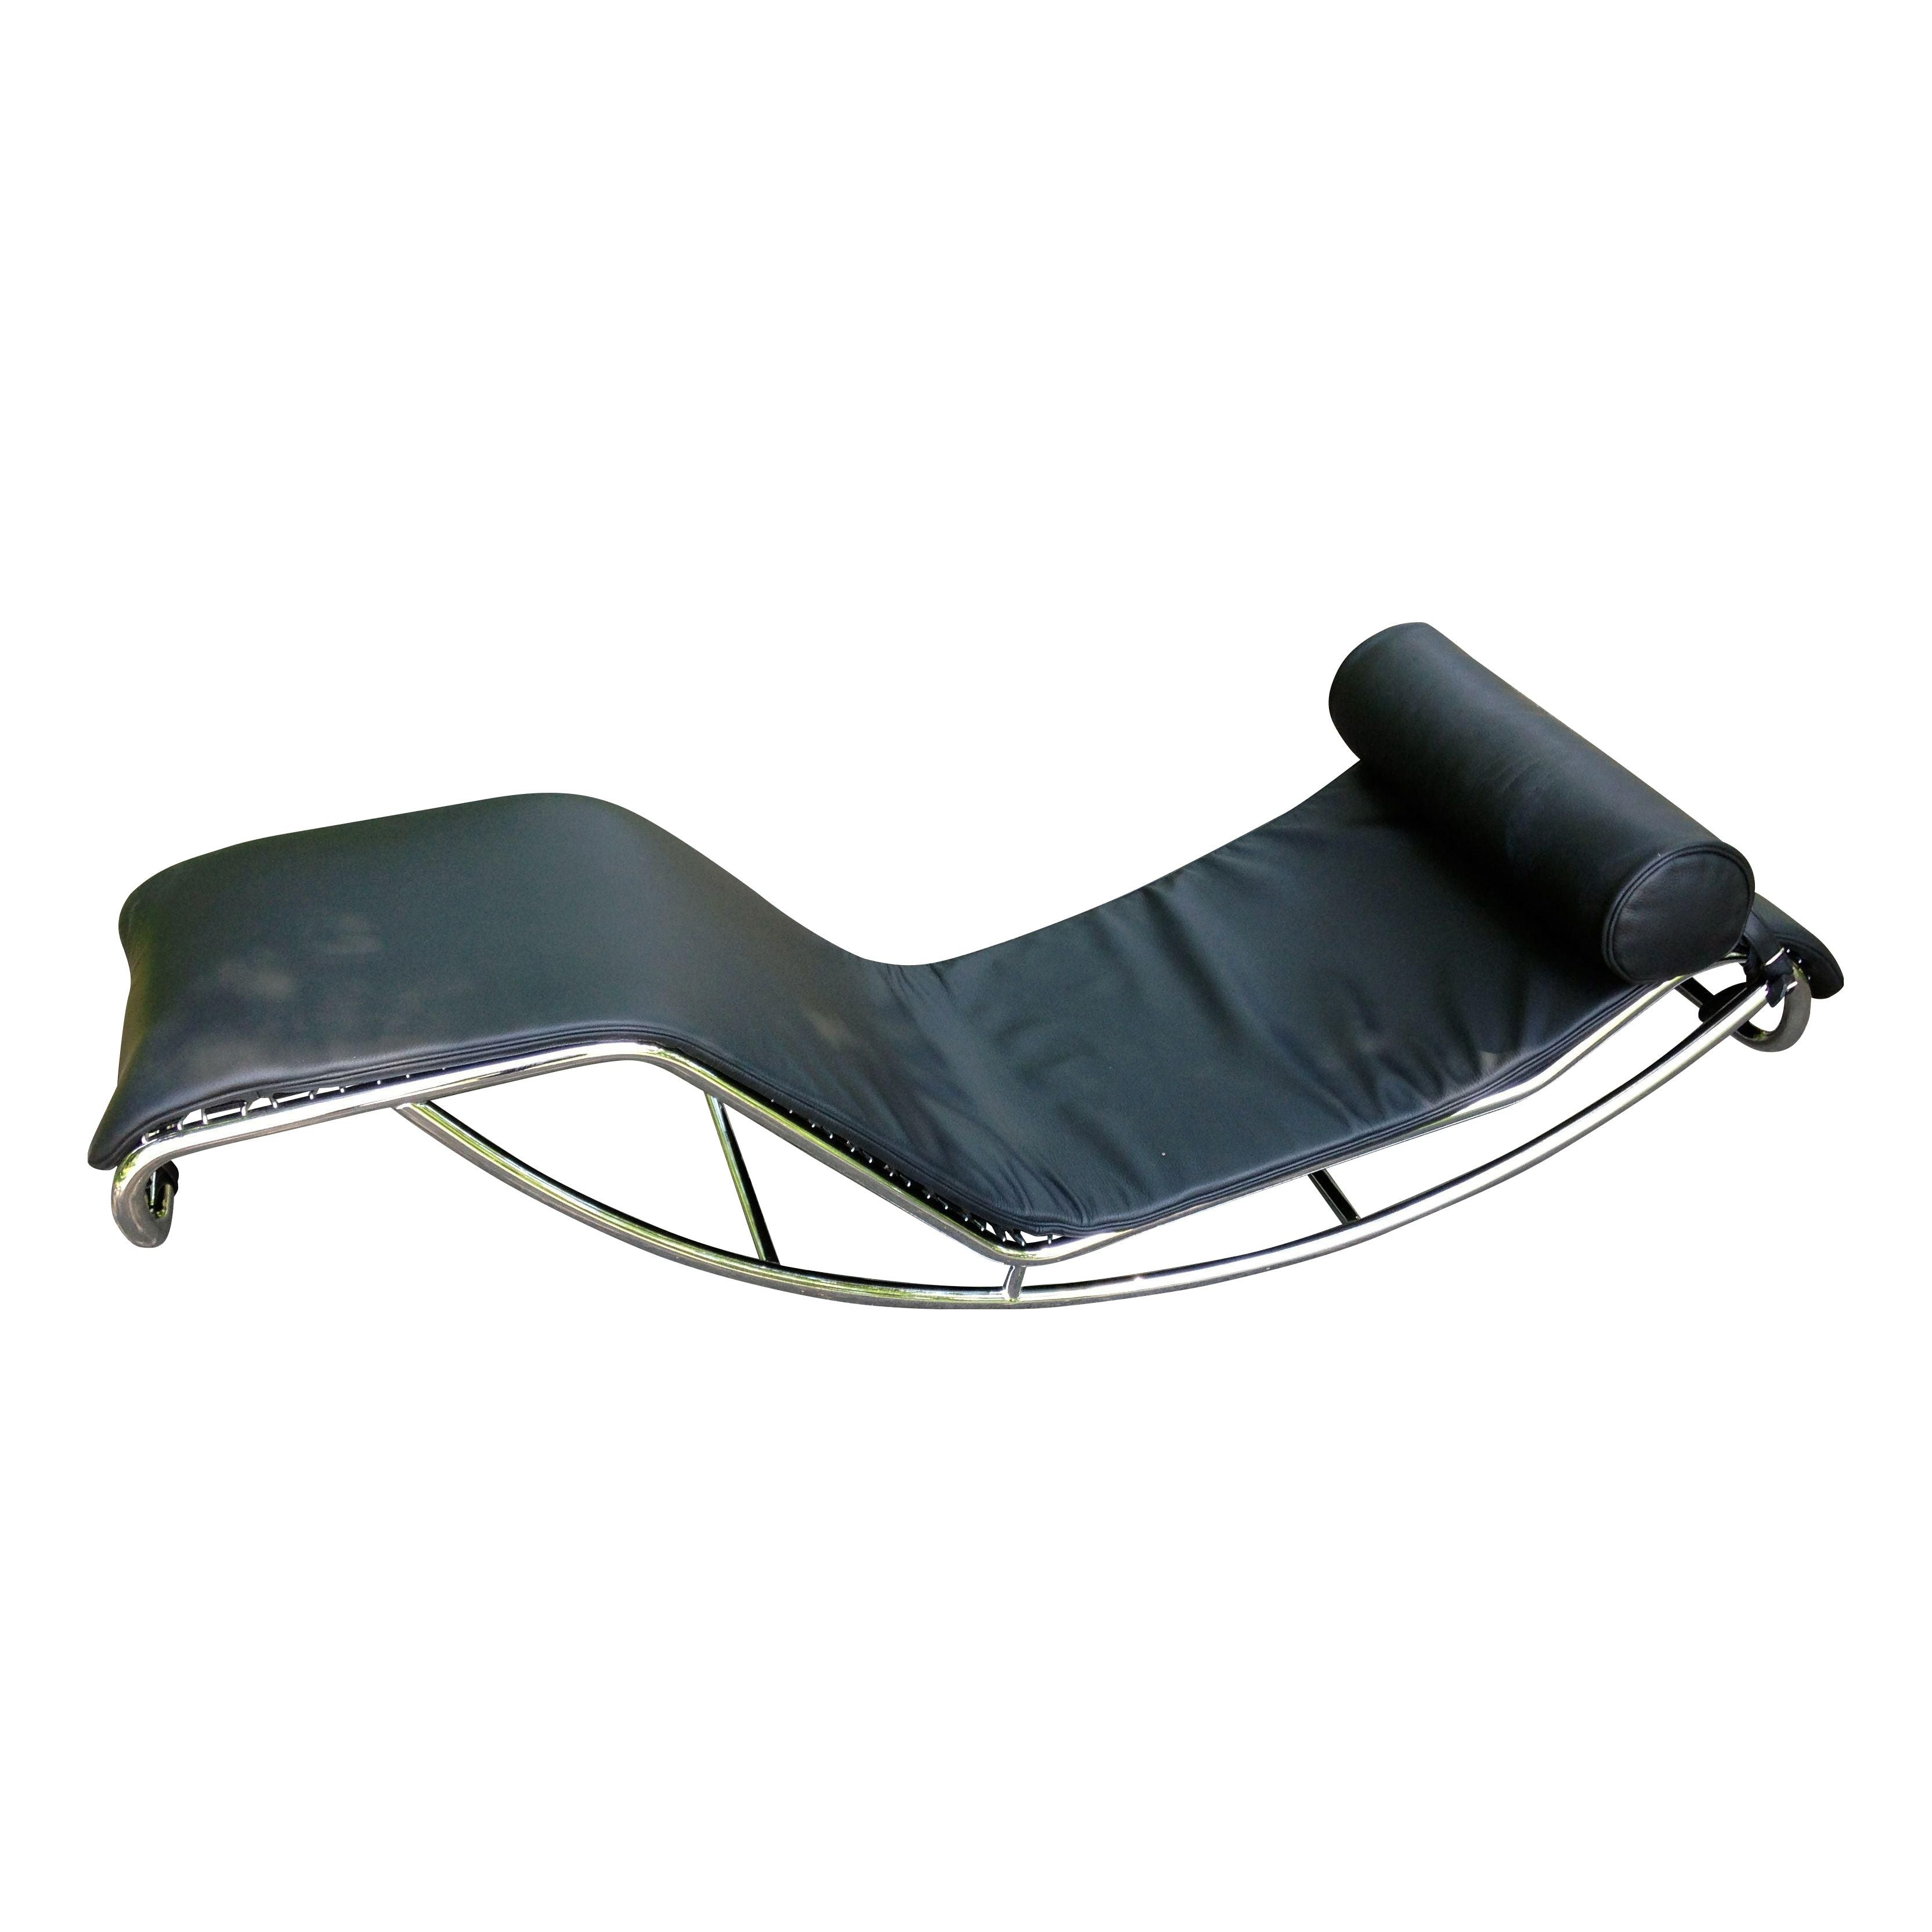 Le corbusier lc4 chaise longue style chair chairish for Chaise longue le corbusier cad